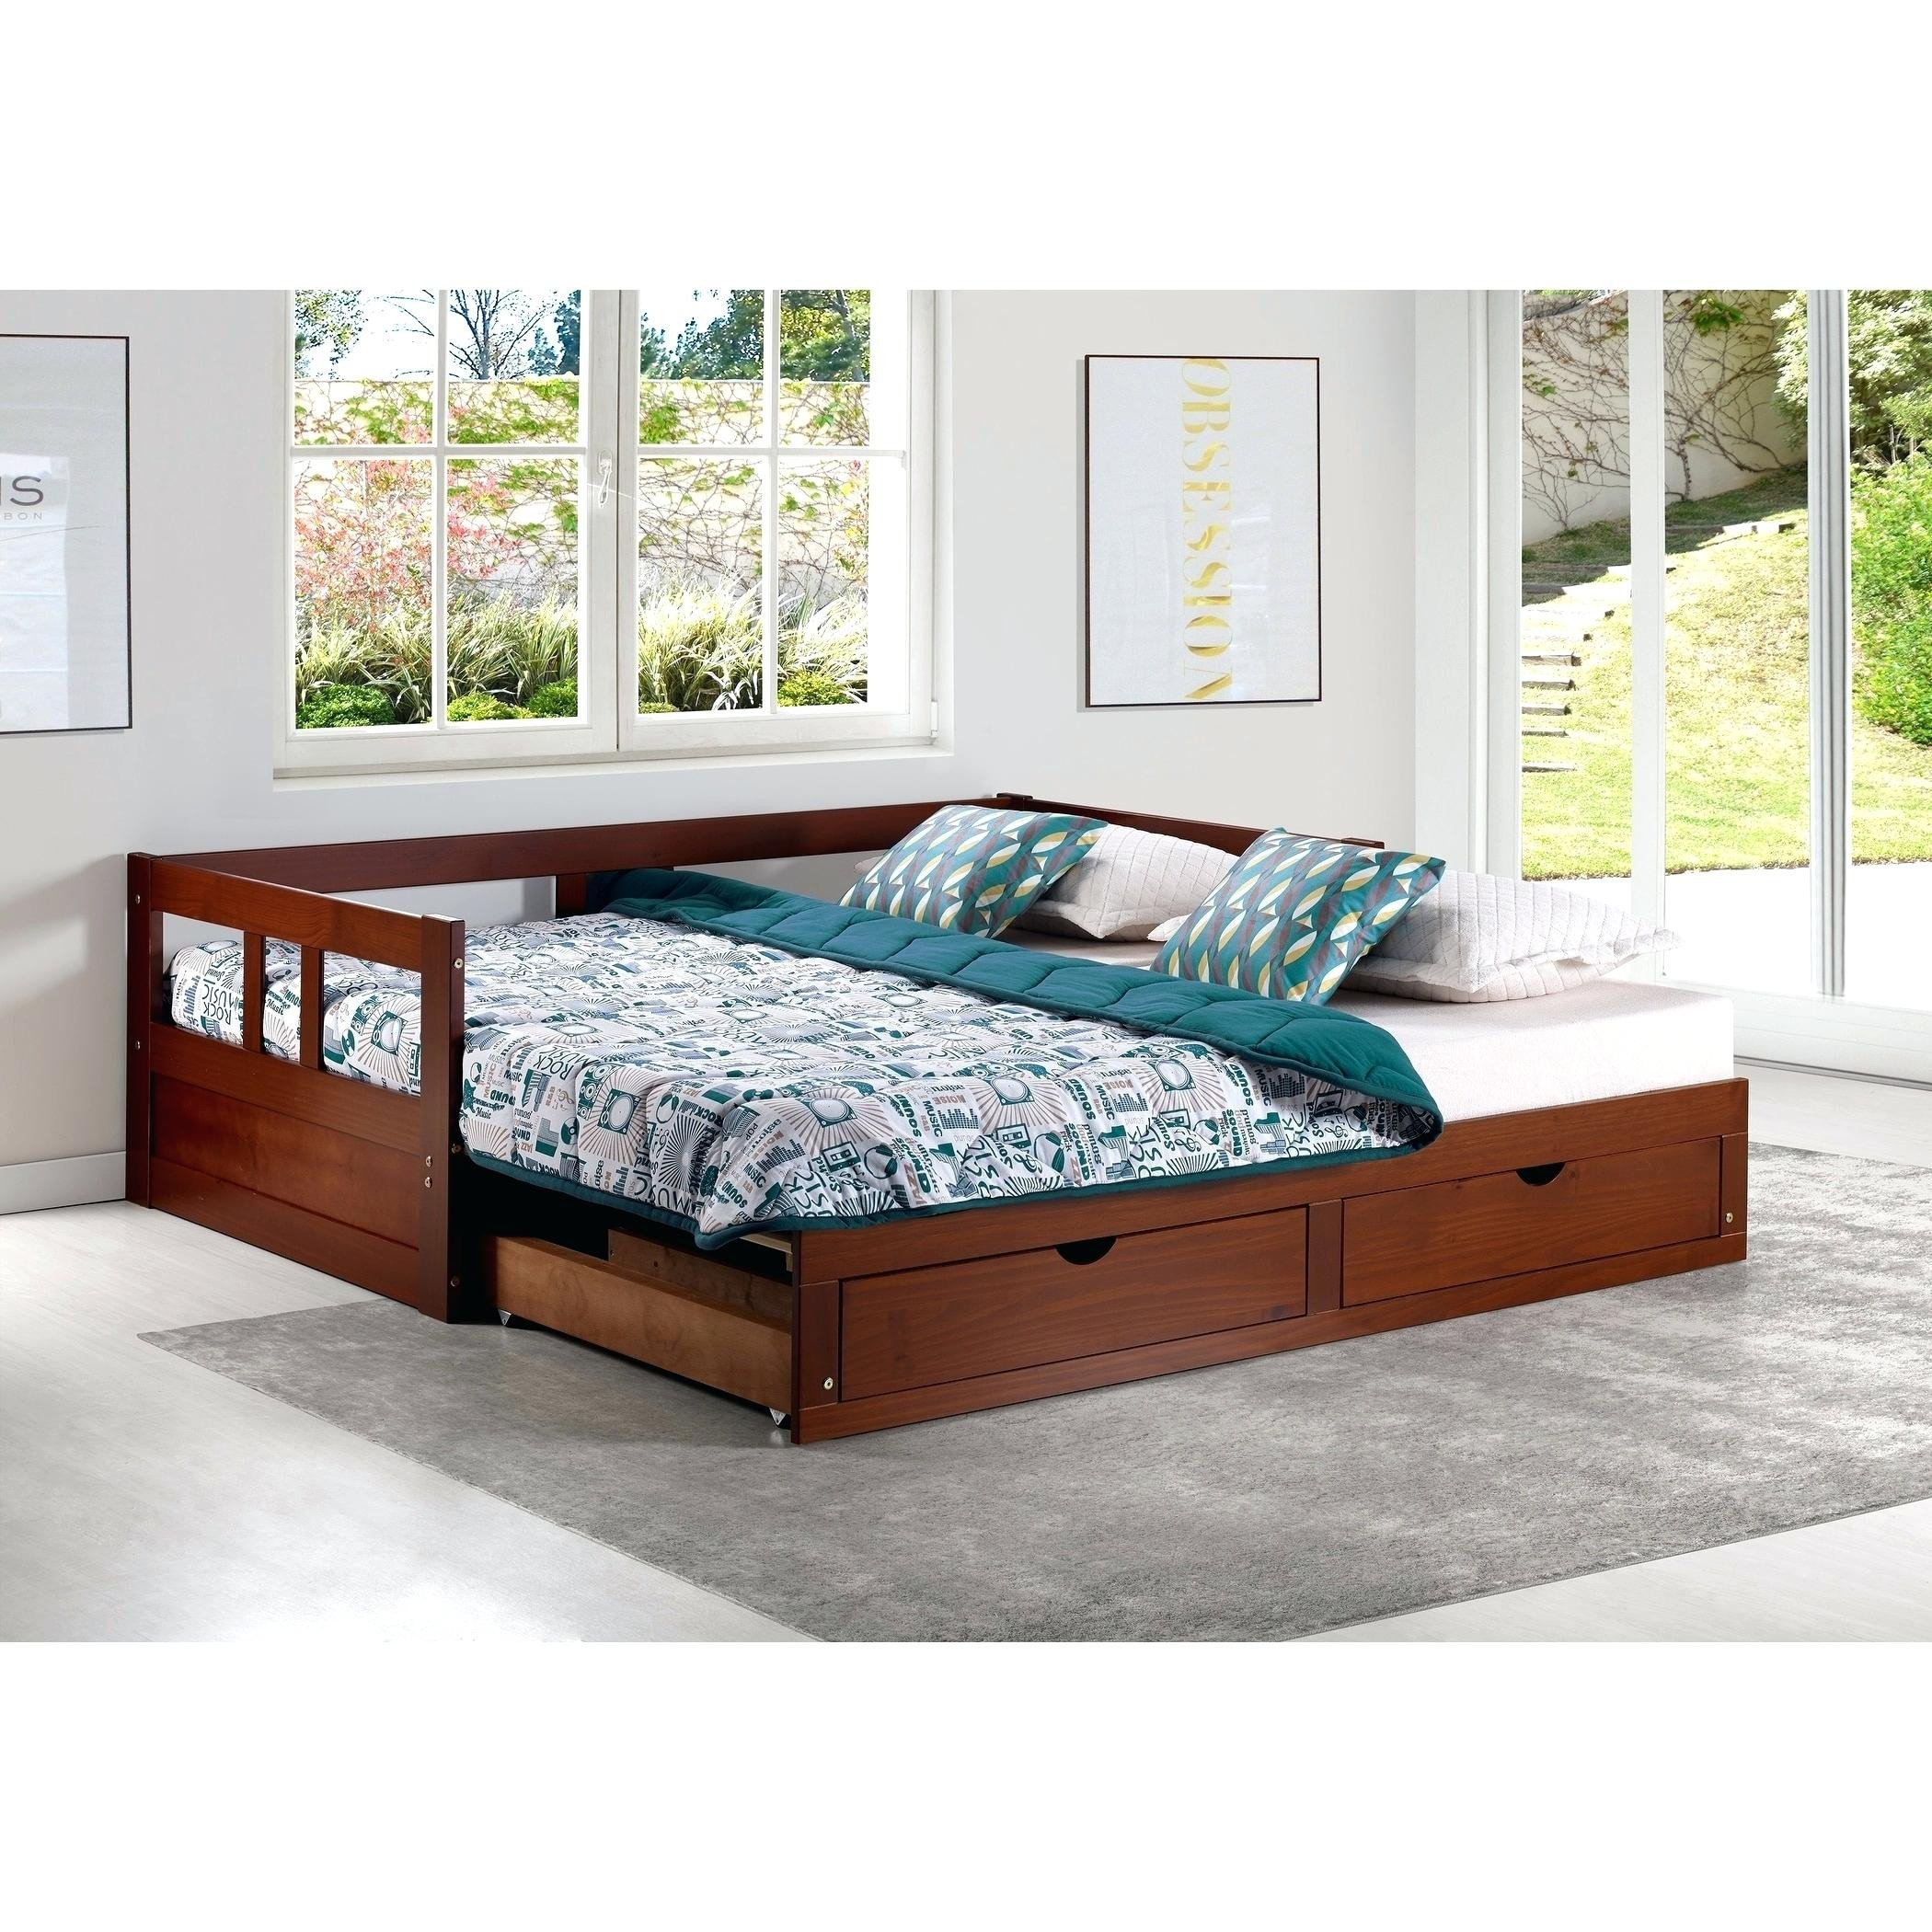 Cheap California King Bedroom Set New Bedroom Wonderful Image Style Cal King Bed Frame with